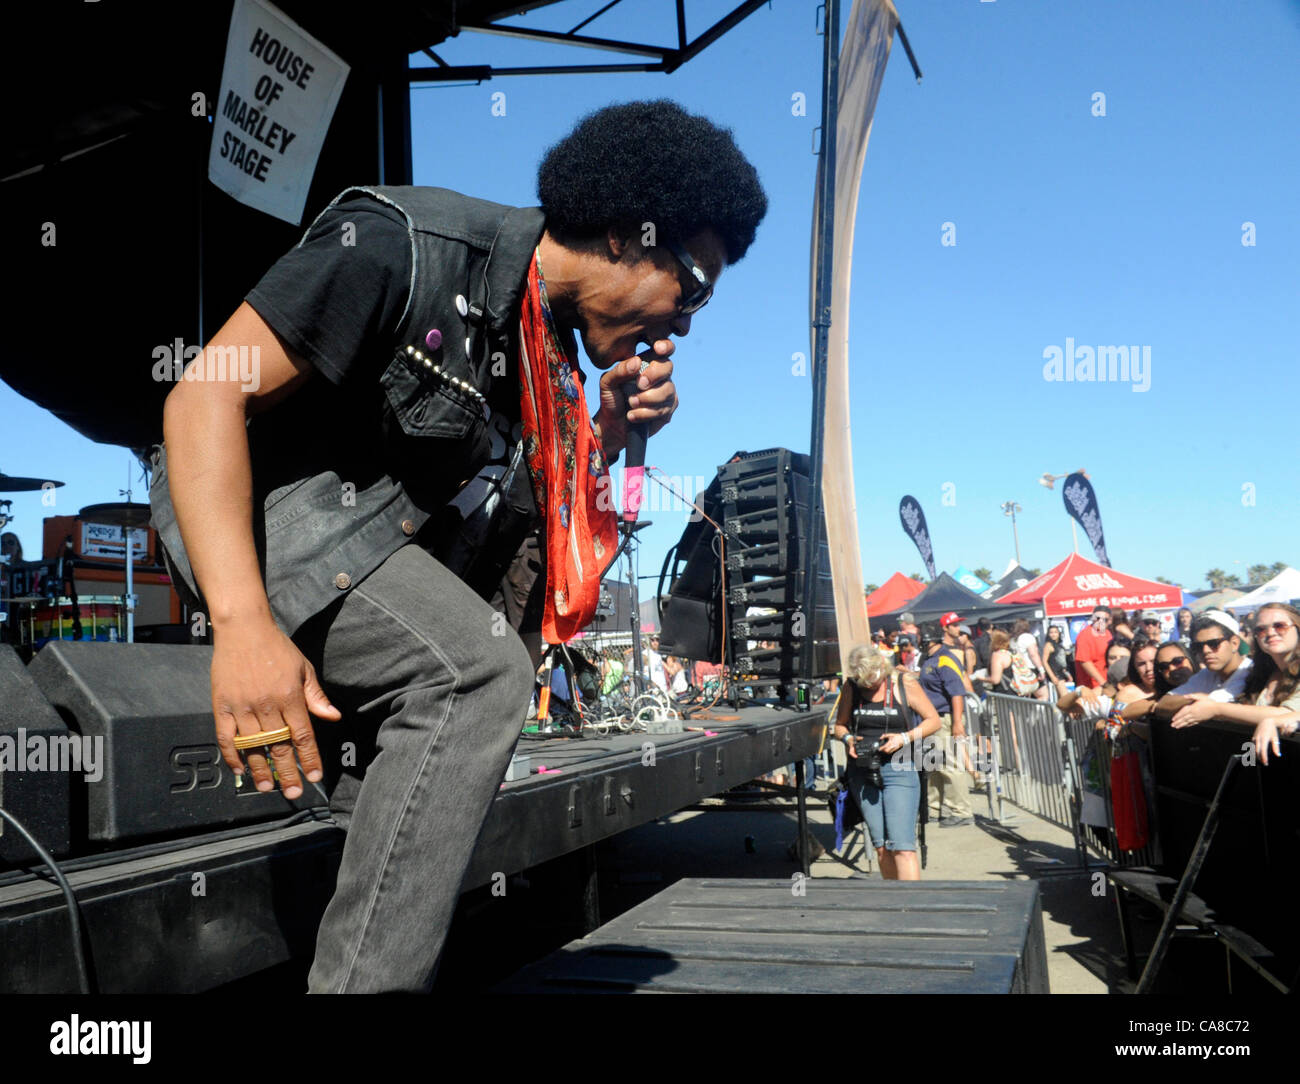 June 25, 2012 - Ventura, California, USA - Musician-CHAMPAGNE CHAMPAGNE performing on the Bob Marley Stage at Vans - Stock Image